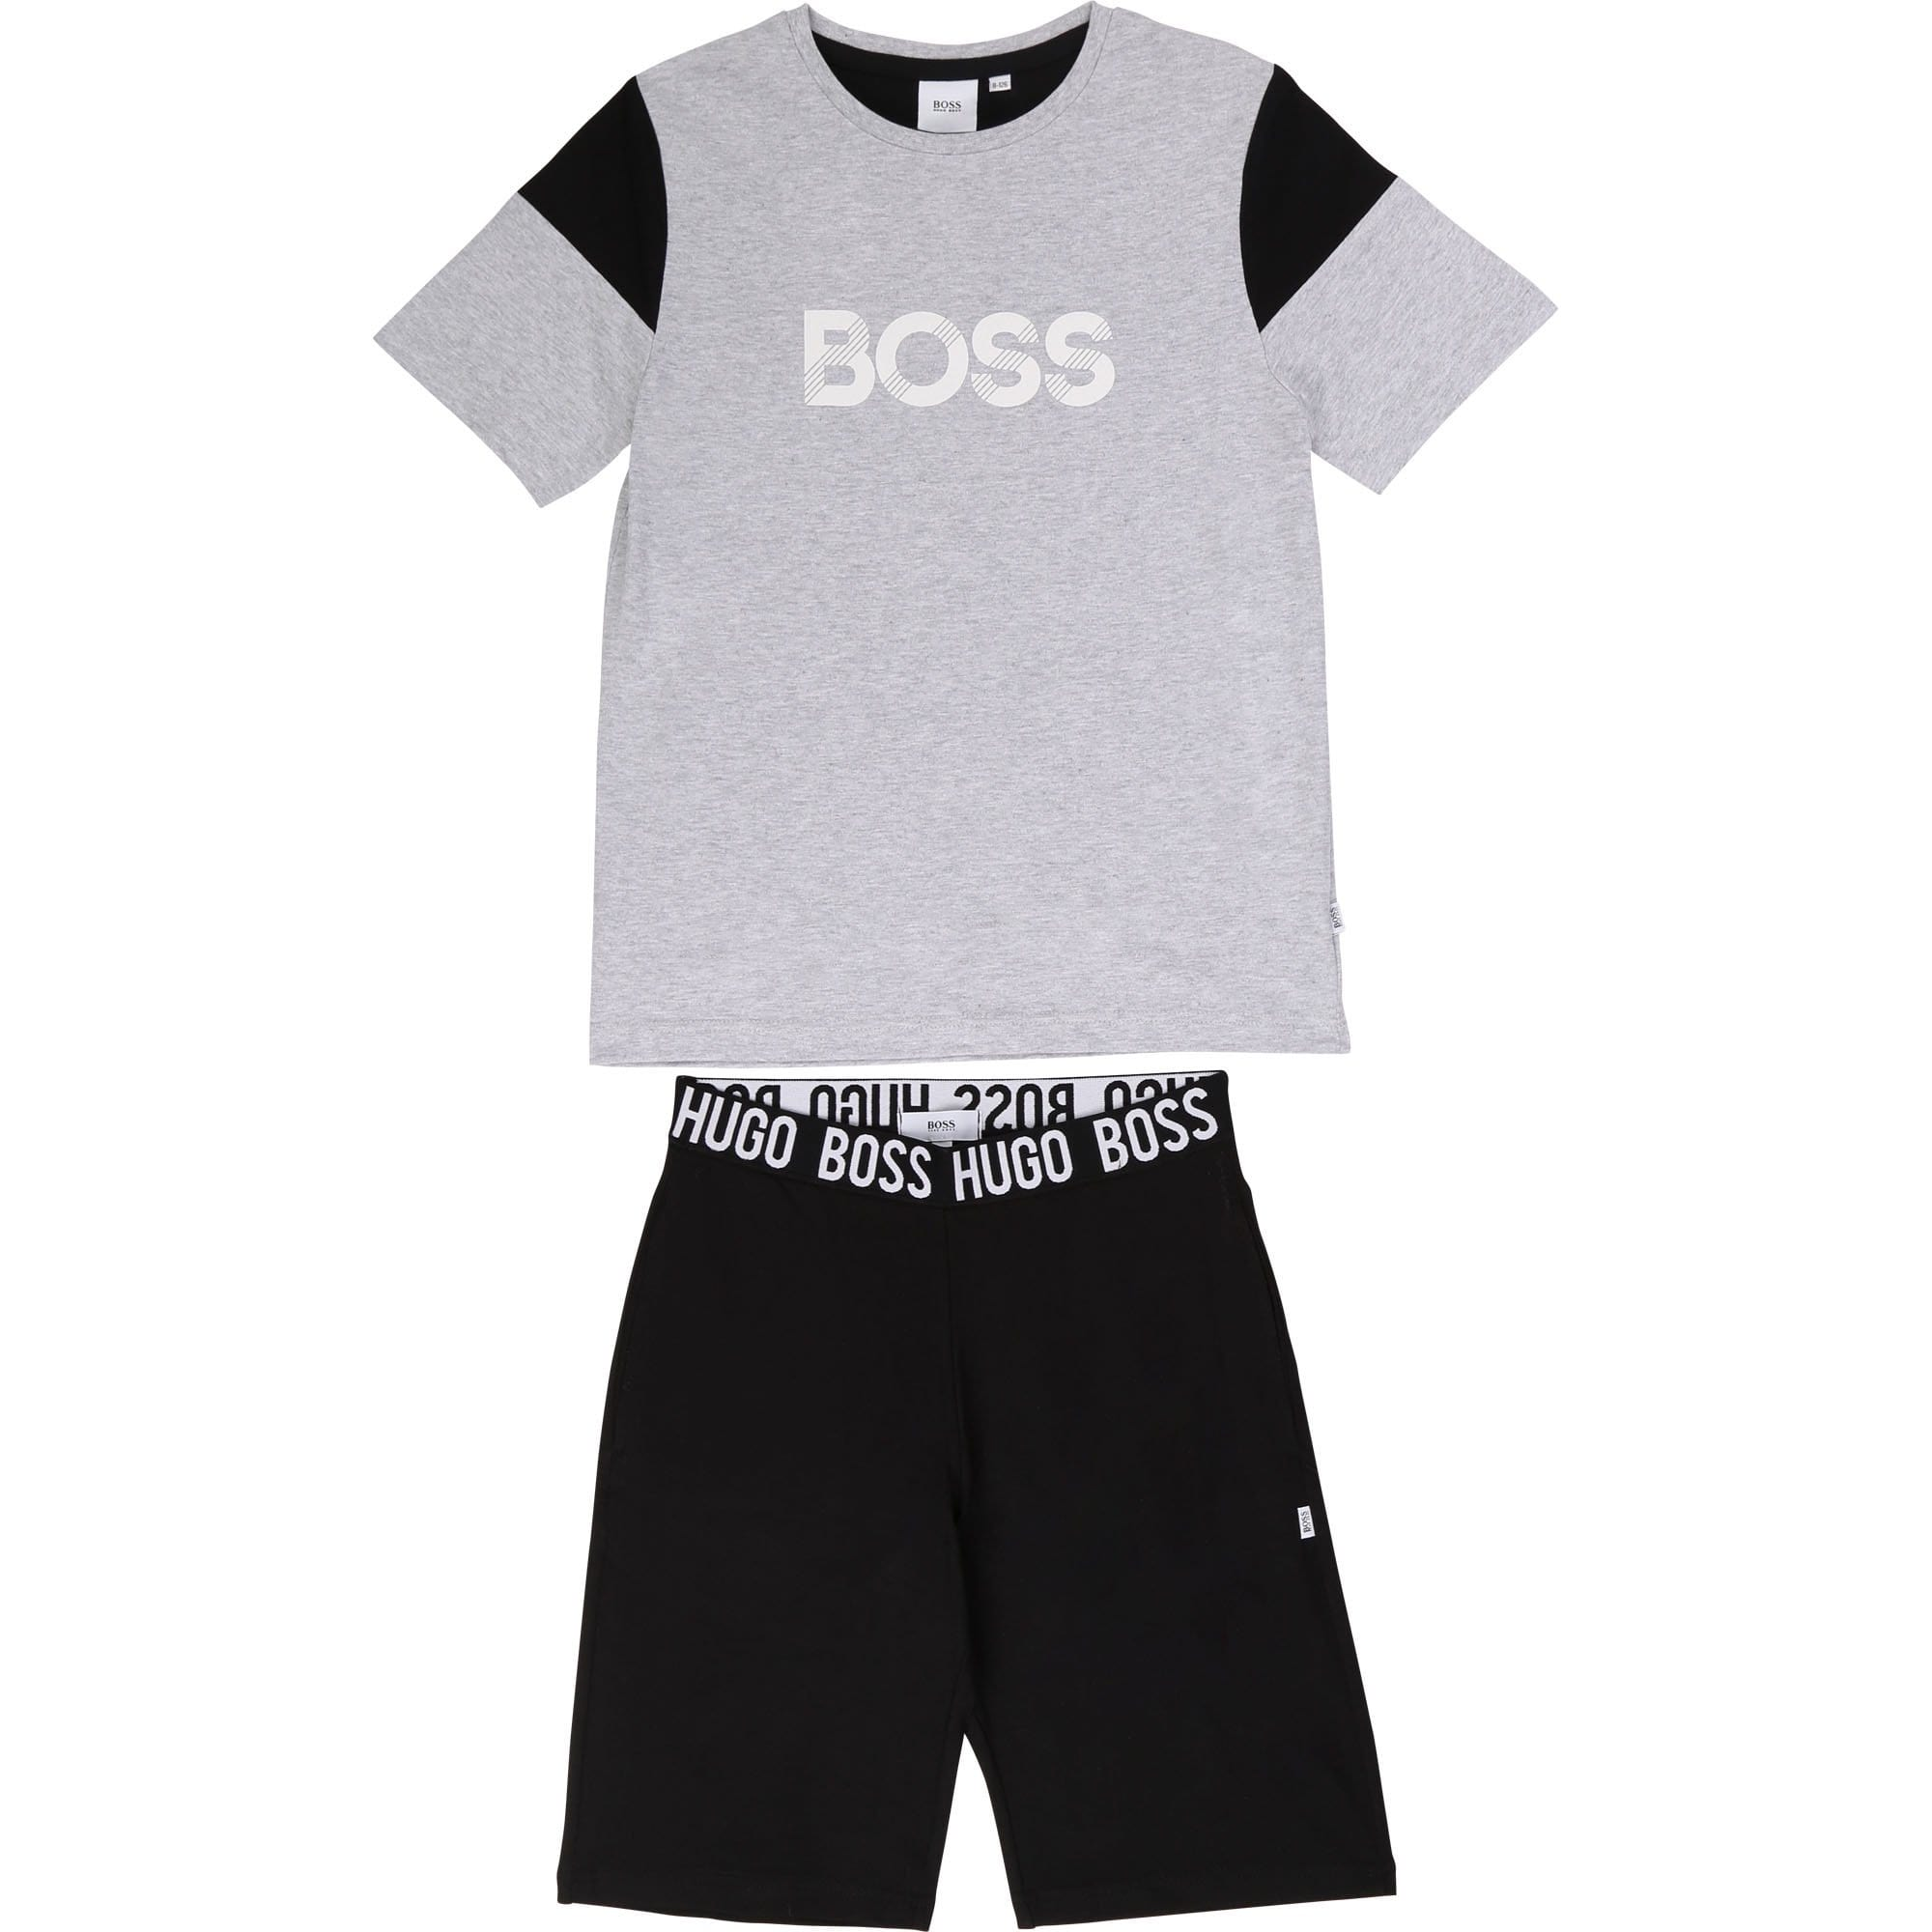 Hugo Boss T-Shirt and Short PJ Set Grey/Black J28072/M10